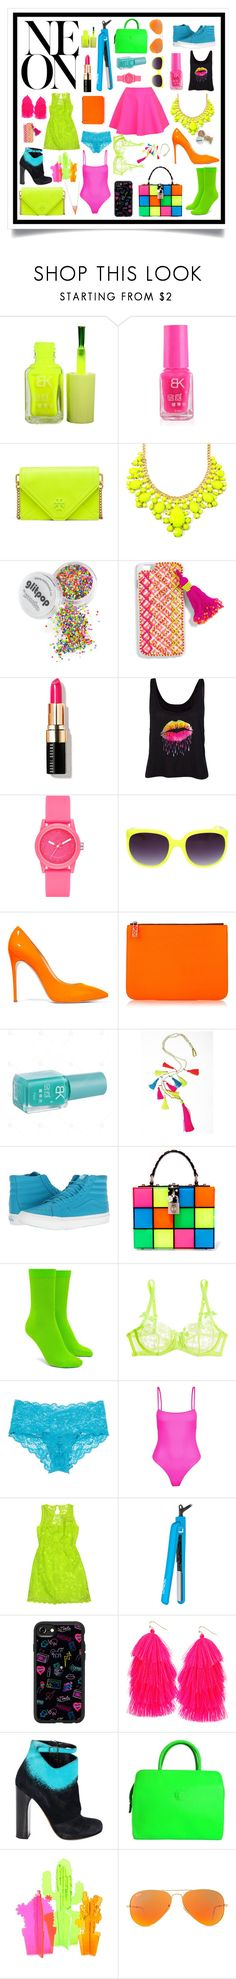 """Neon"" by akjdmt ❤ liked on Polyvore featuring Tory Burch, UNIF, BaubleBar, Bobbi Brown Cosmetics, Skechers, Casadei, Kenzo, Vans, Dolce&Gabbana and Forever 21"